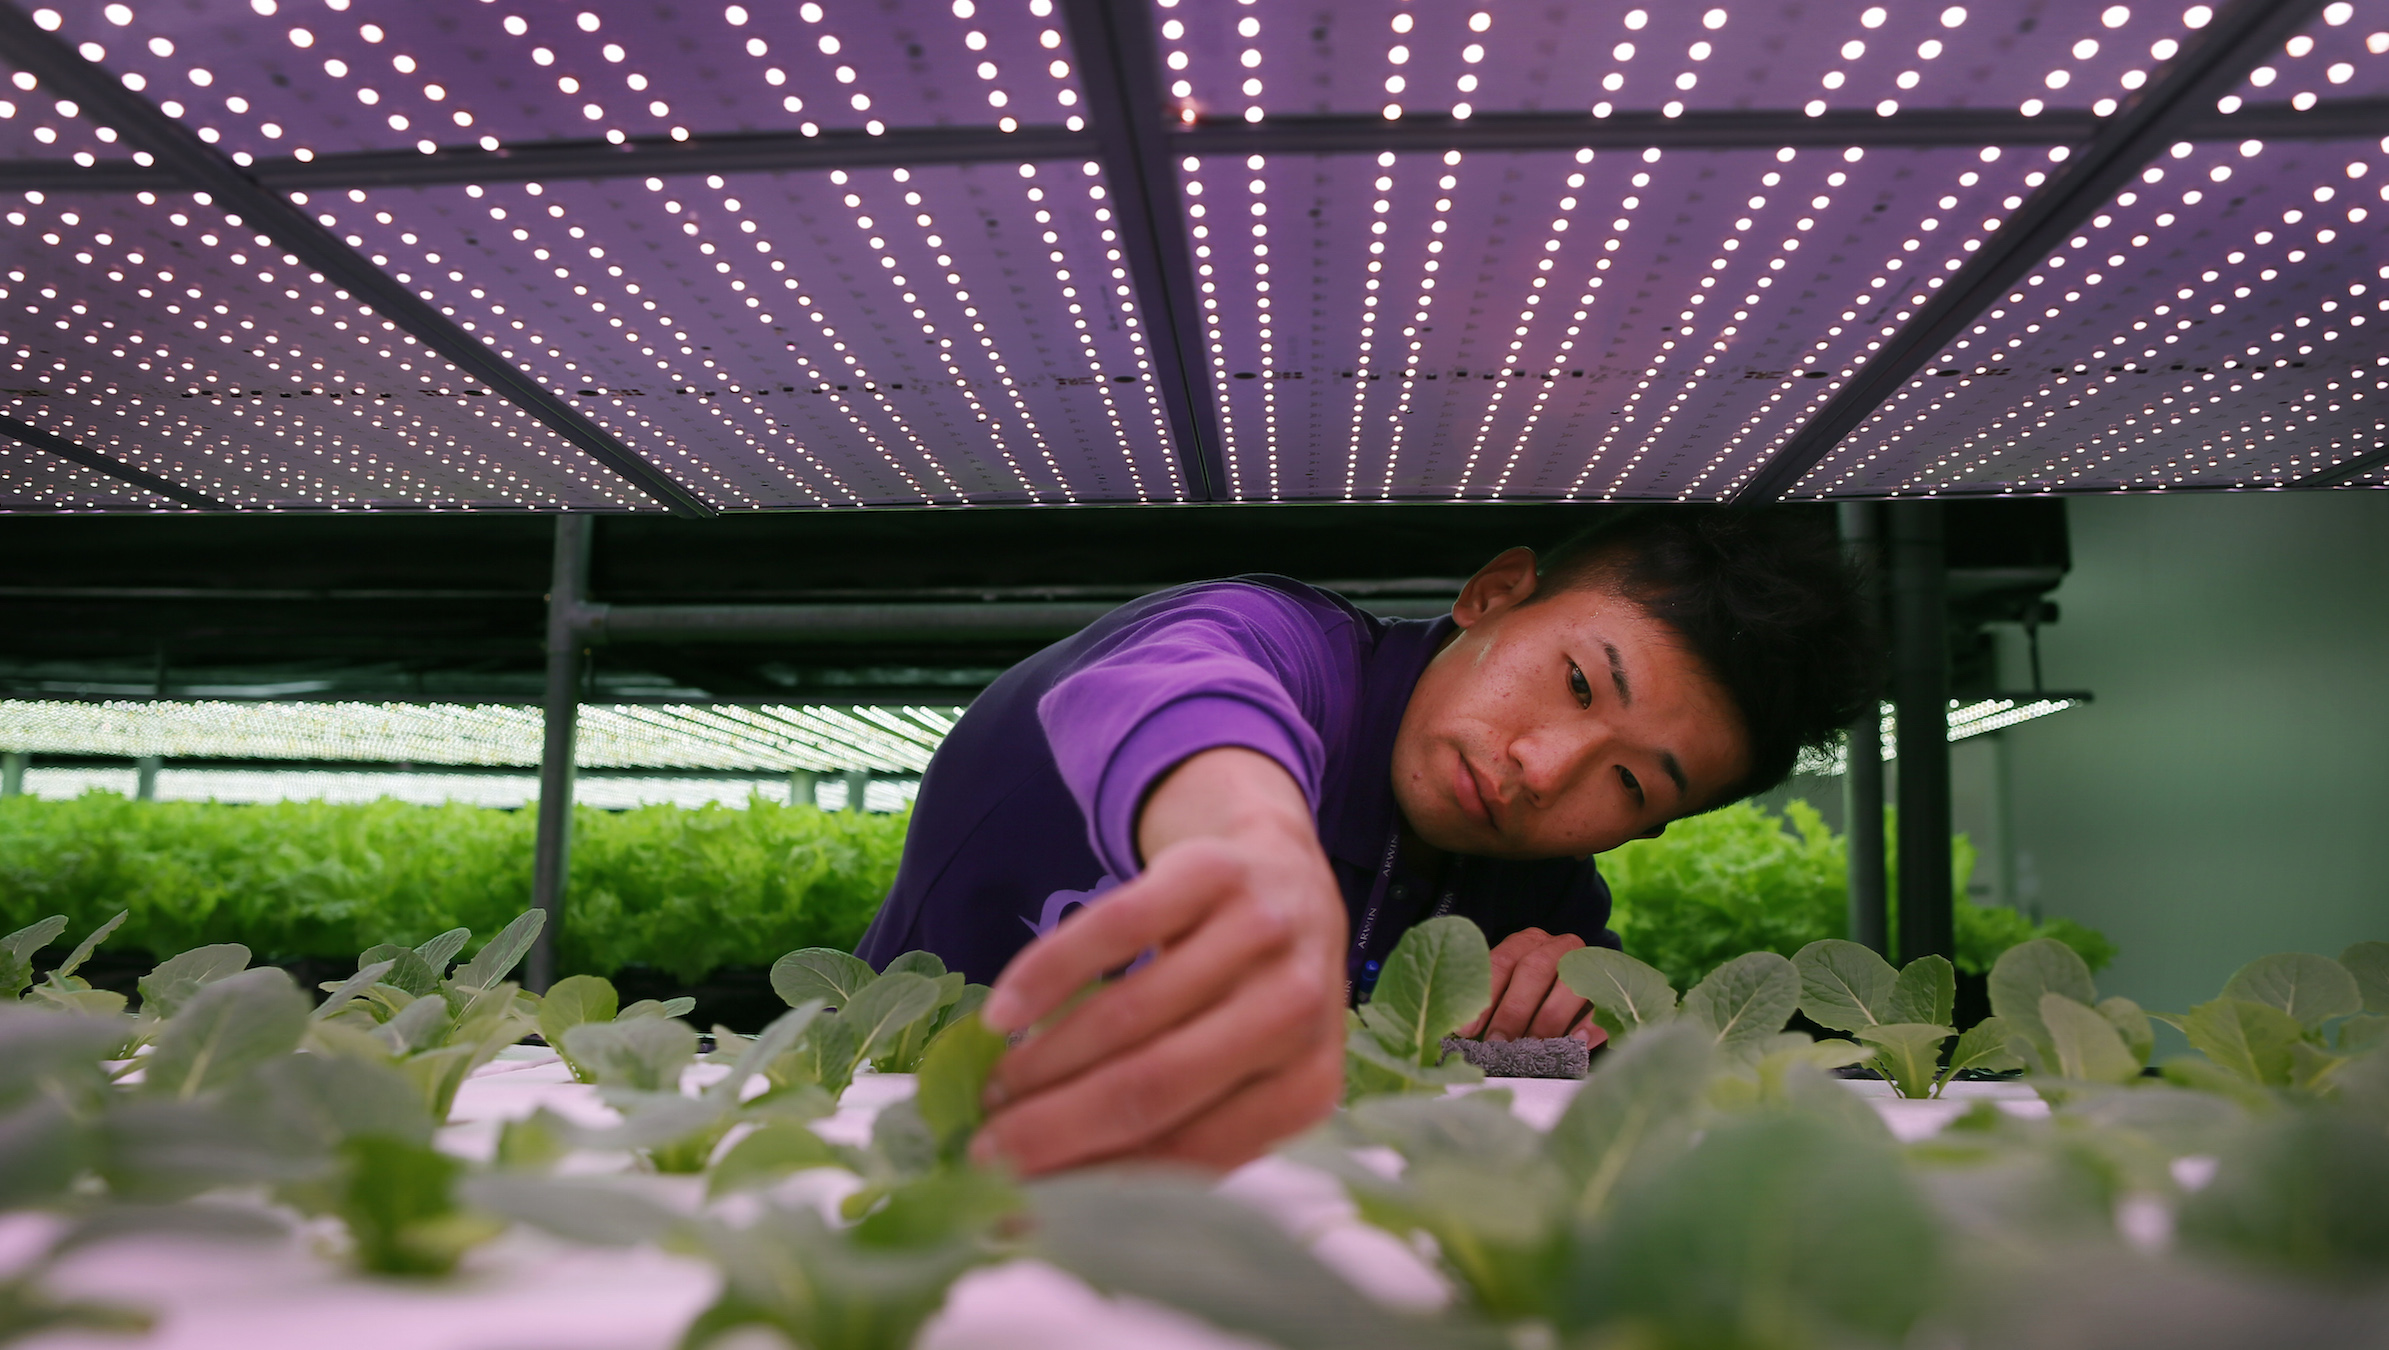 In this photo taken on Wednesday, March 4, 2015, farmer Chang Chen-kai, prunes common salad lettuce growing under banks of LED lights at the ARWIN plant factory in Miaoli, northern Taiwan. Entrepreneurs in Taiwan are combining the island's leading edge in light-emitting diodes (LEDs) with its traditional agricultural know-how to create artificial environments to grow vegetables. These indoor grow-rooms have nutrient-filled water instead of soil and variable LED lighting to imitate the cycle of night and day. They are gaining popularity for raising everything from common lettuce to the exotic South African ice plant, which draws US $400 per kilogram. These LED-lit hydroponic environments yield more crops per area than soil but without the need for traditional toxic pesticides. (AP Photo/Wally Santana)